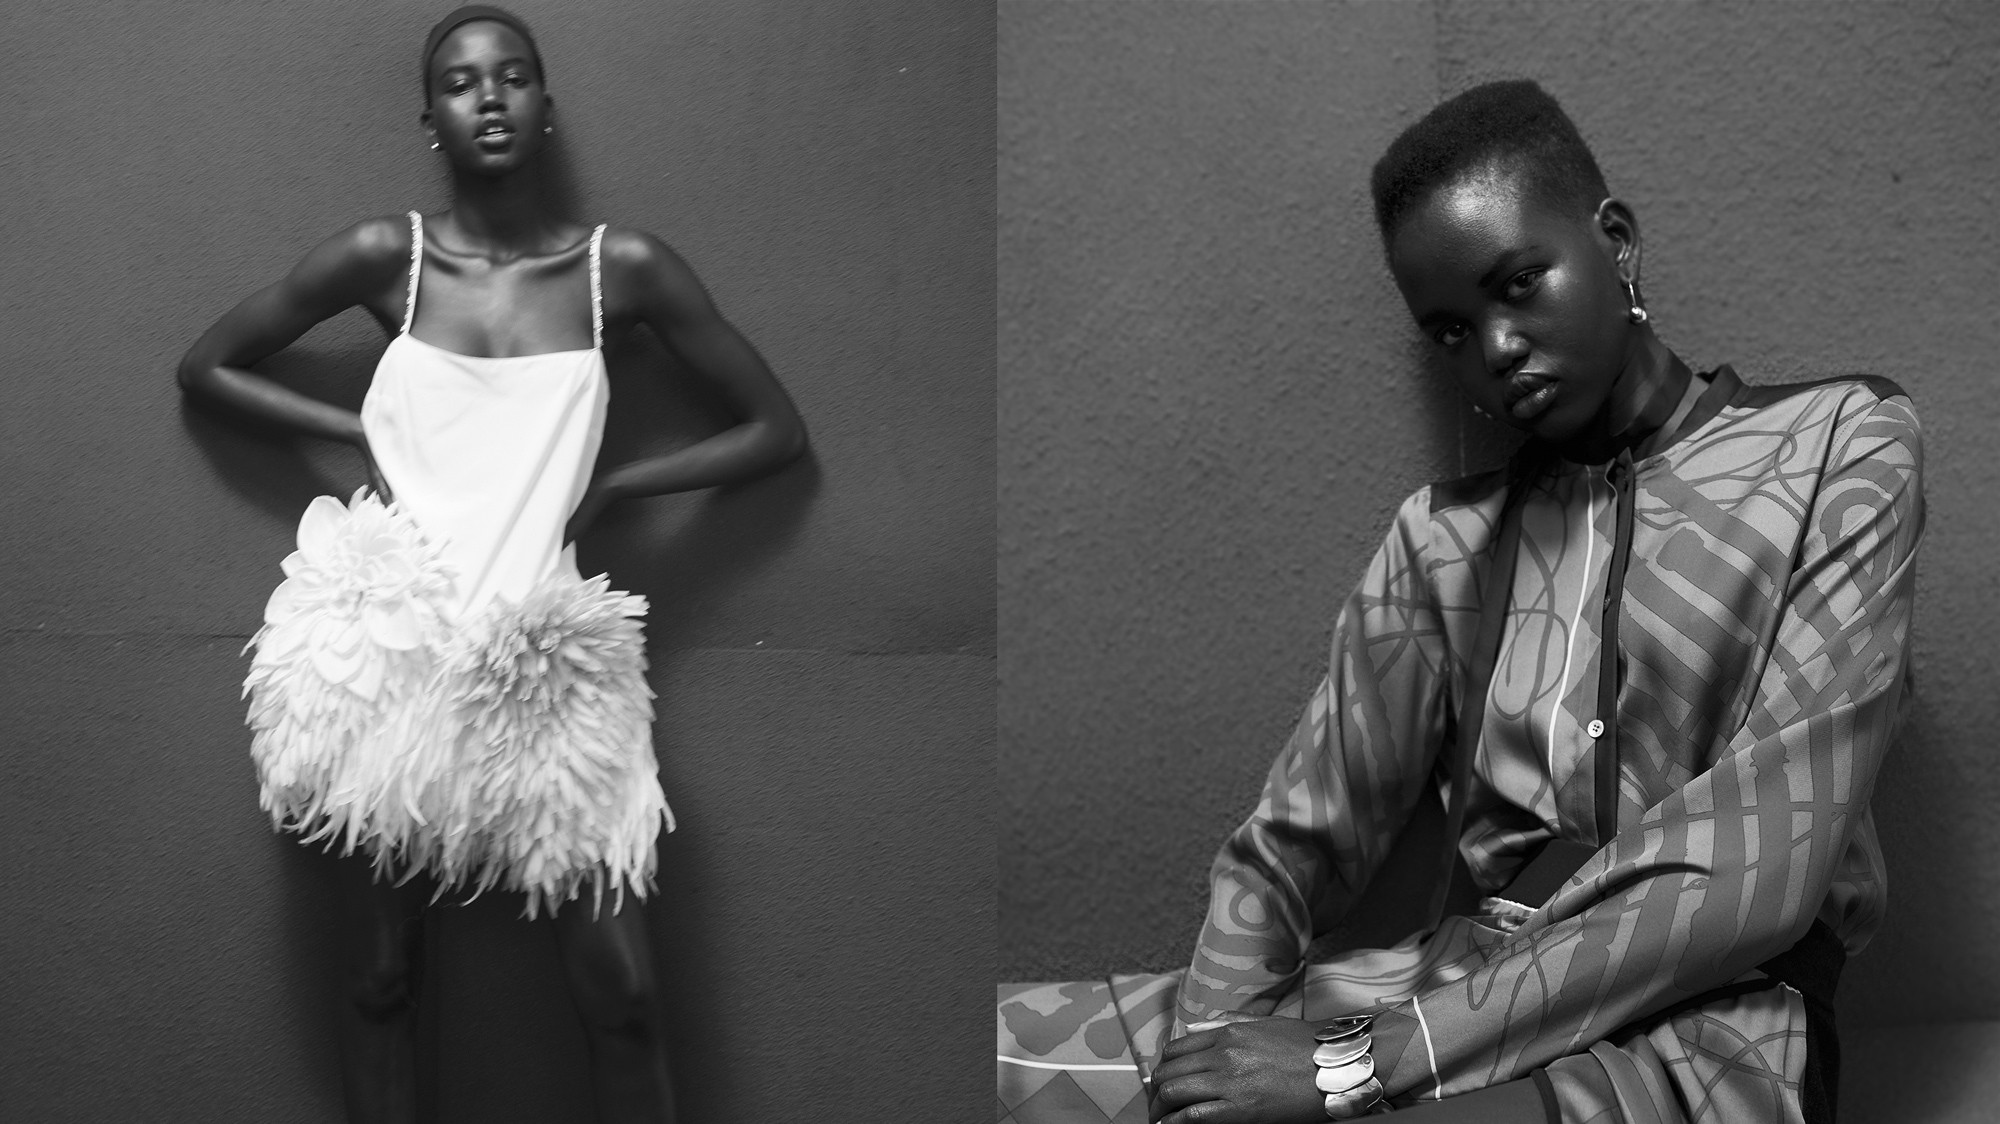 adut akech isn't a star on the rise, she's a supernova